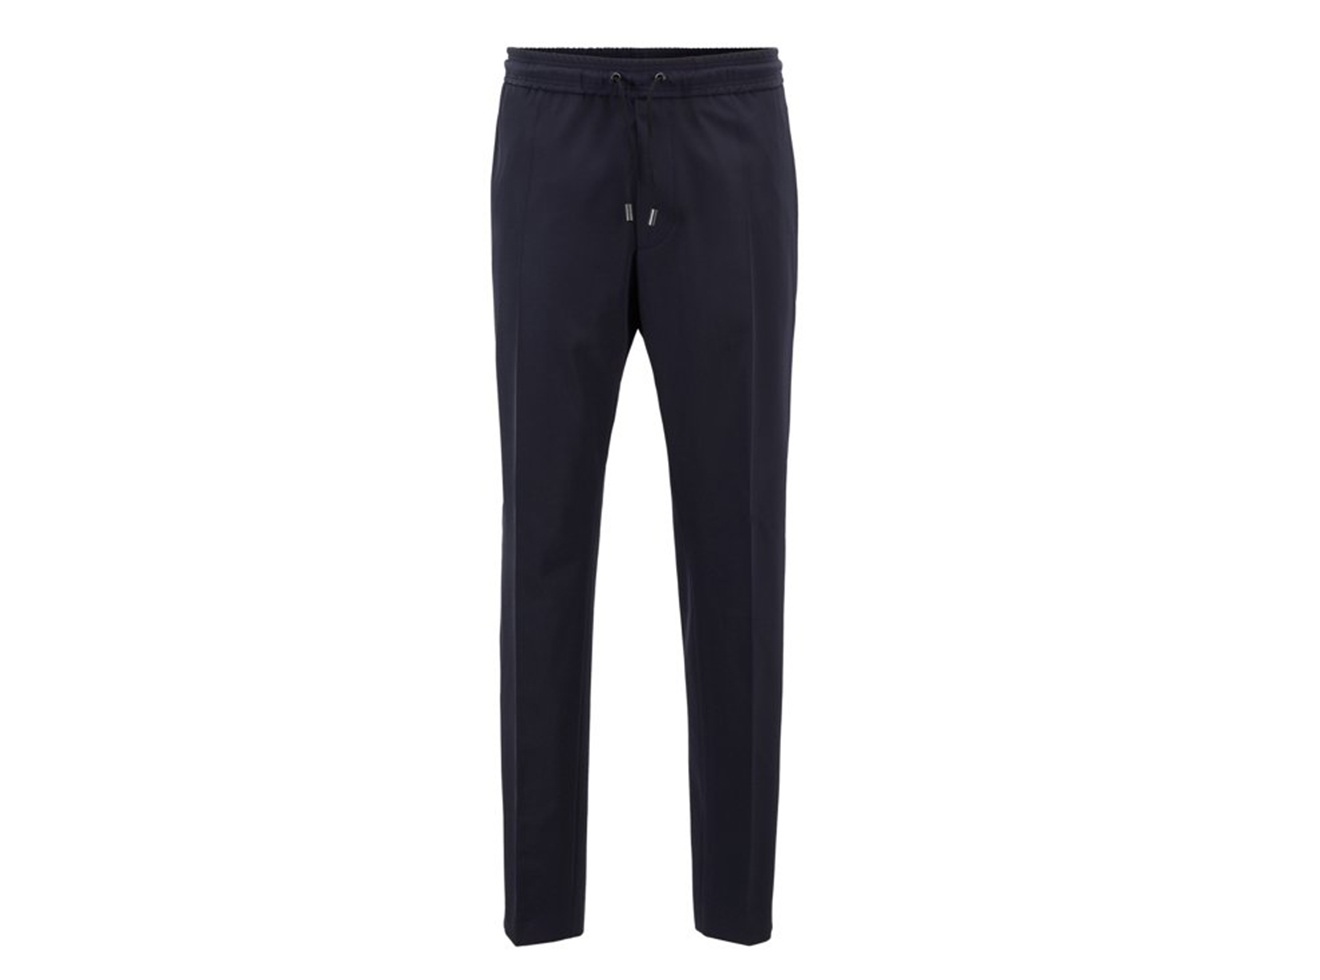 Hugo Boss Banks2 dress pants/sweats